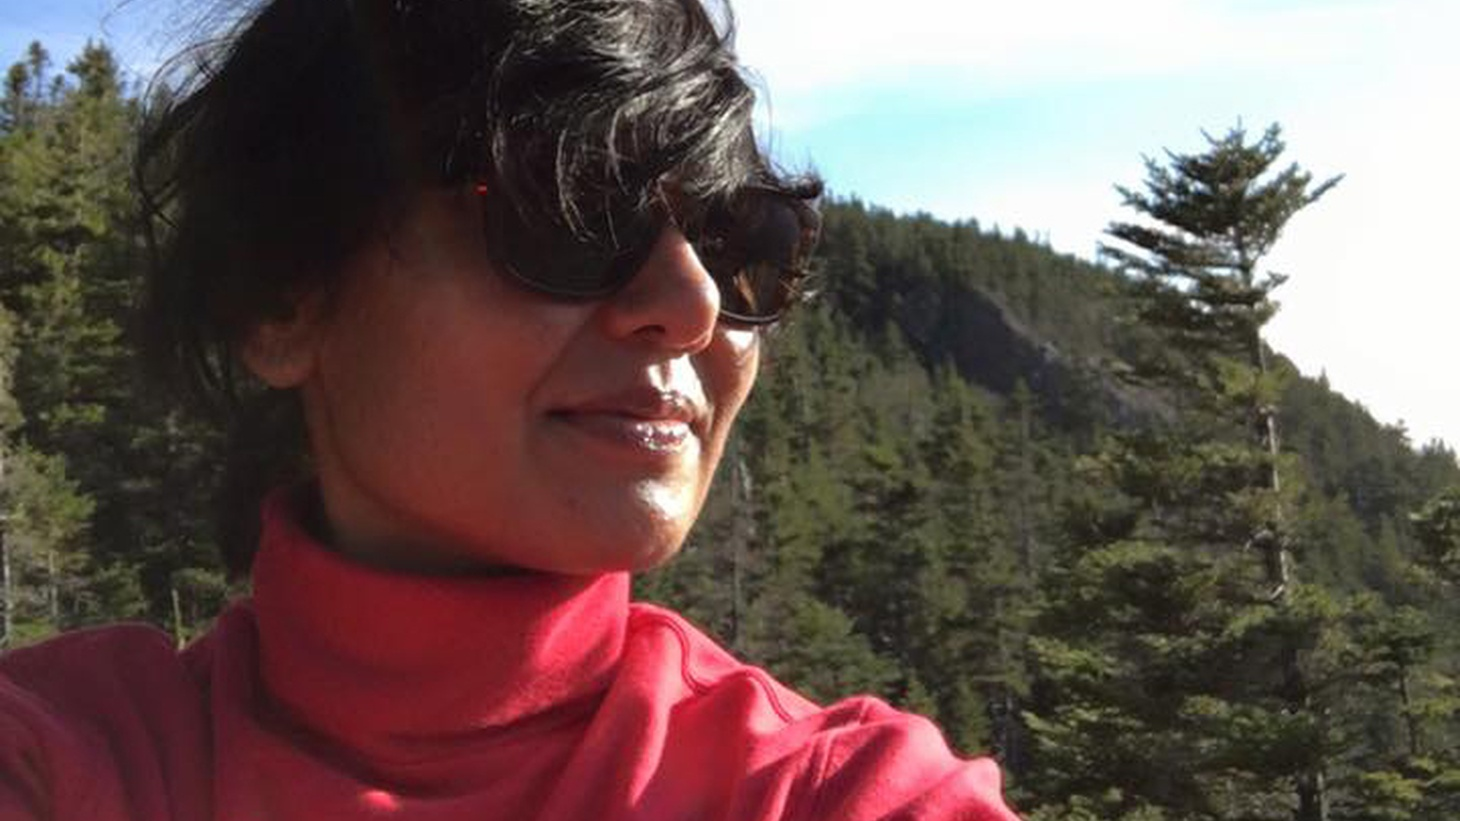 When Namee Baijal moved from India to Los Angeles, the differences were all around her.